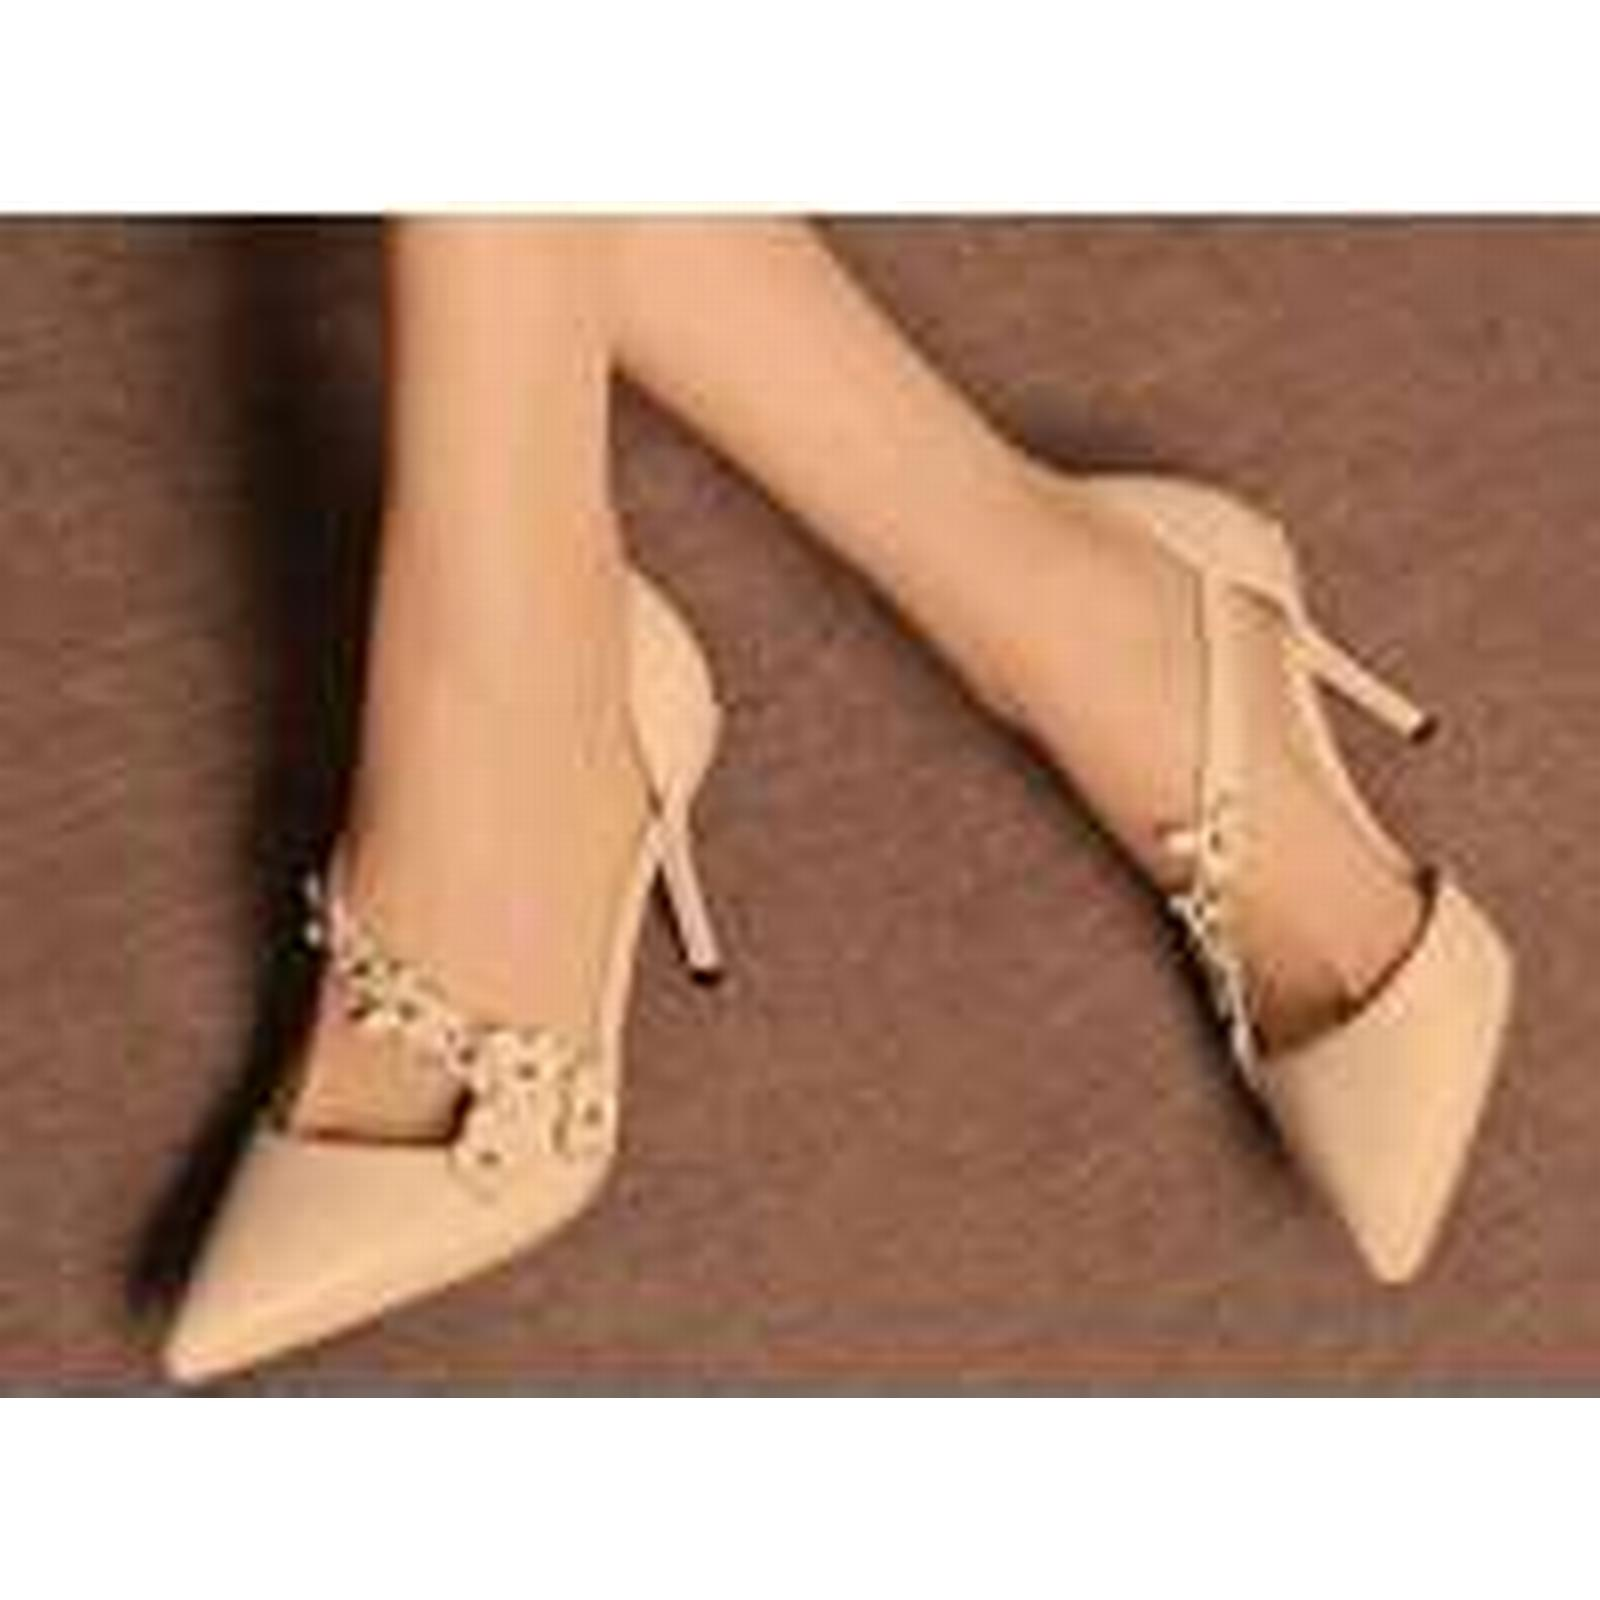 Bonanza (Global) pp328 Amazing 3D leather, flowers ankle pump, genuine leather, 3D size 3-9 beige b10436